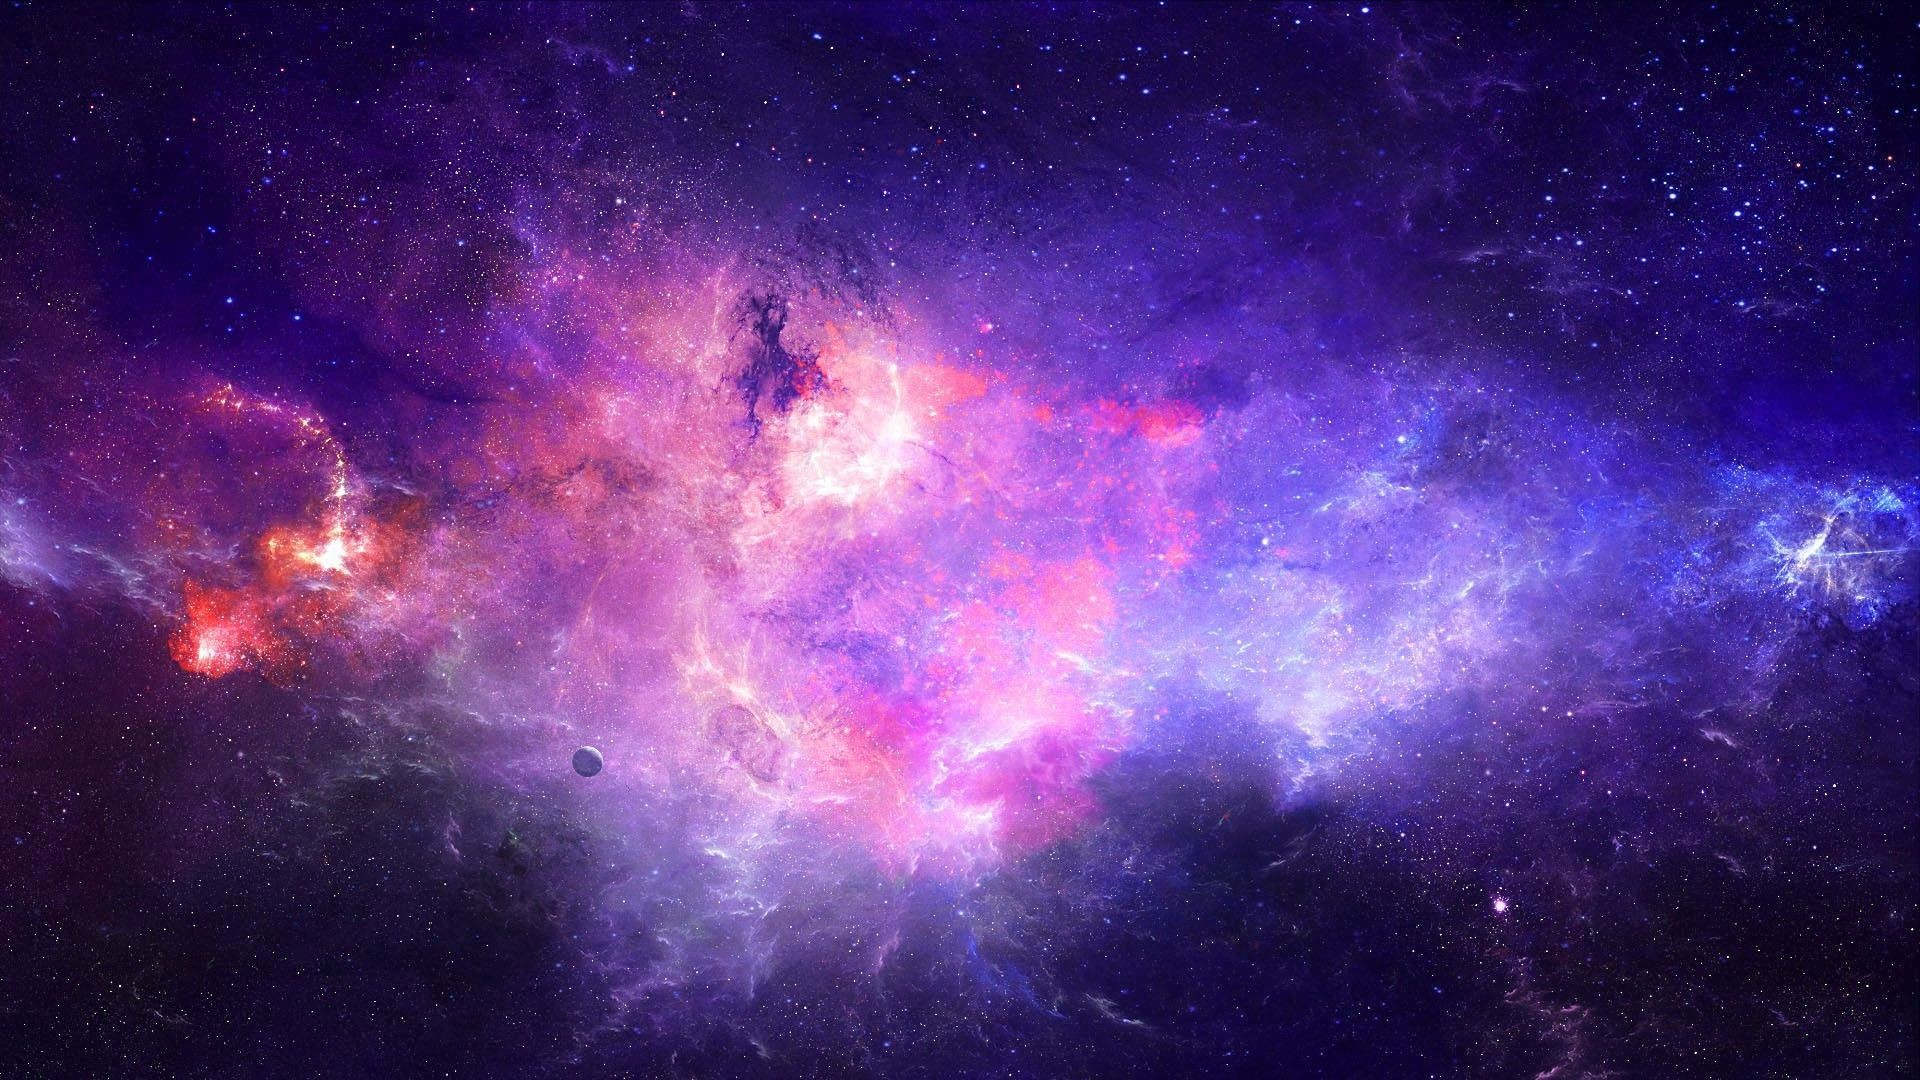 Be Interested Take A Look At This Space Galaxy Animated Wallpaper